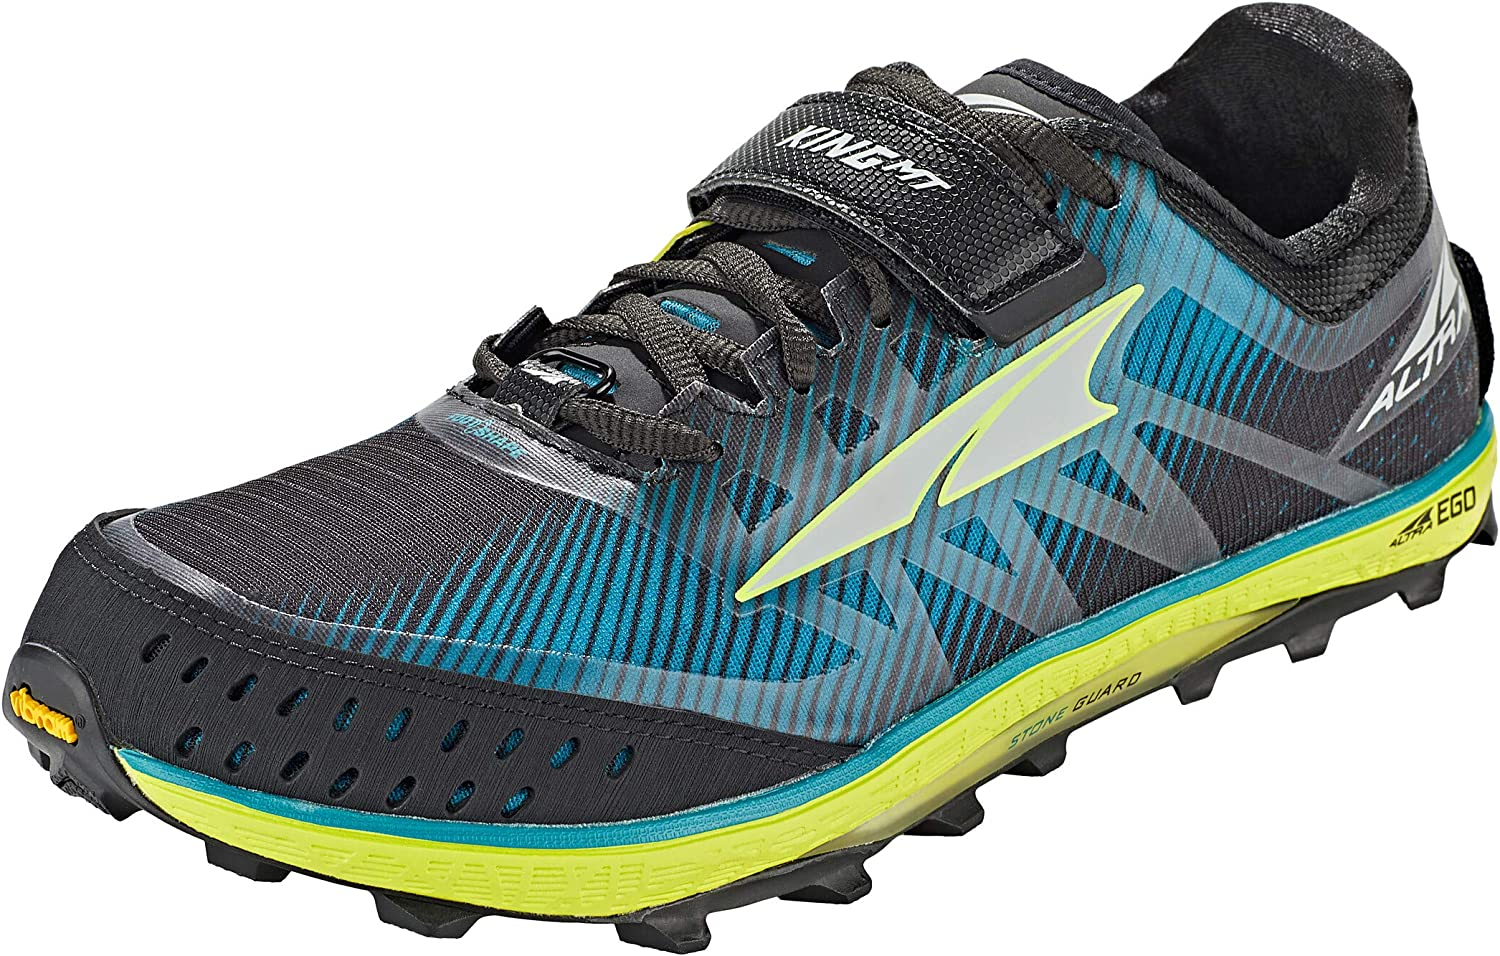 Limited price sale ALTRA Men's Manufacturer direct delivery King MT Running Shoe 2 Trail